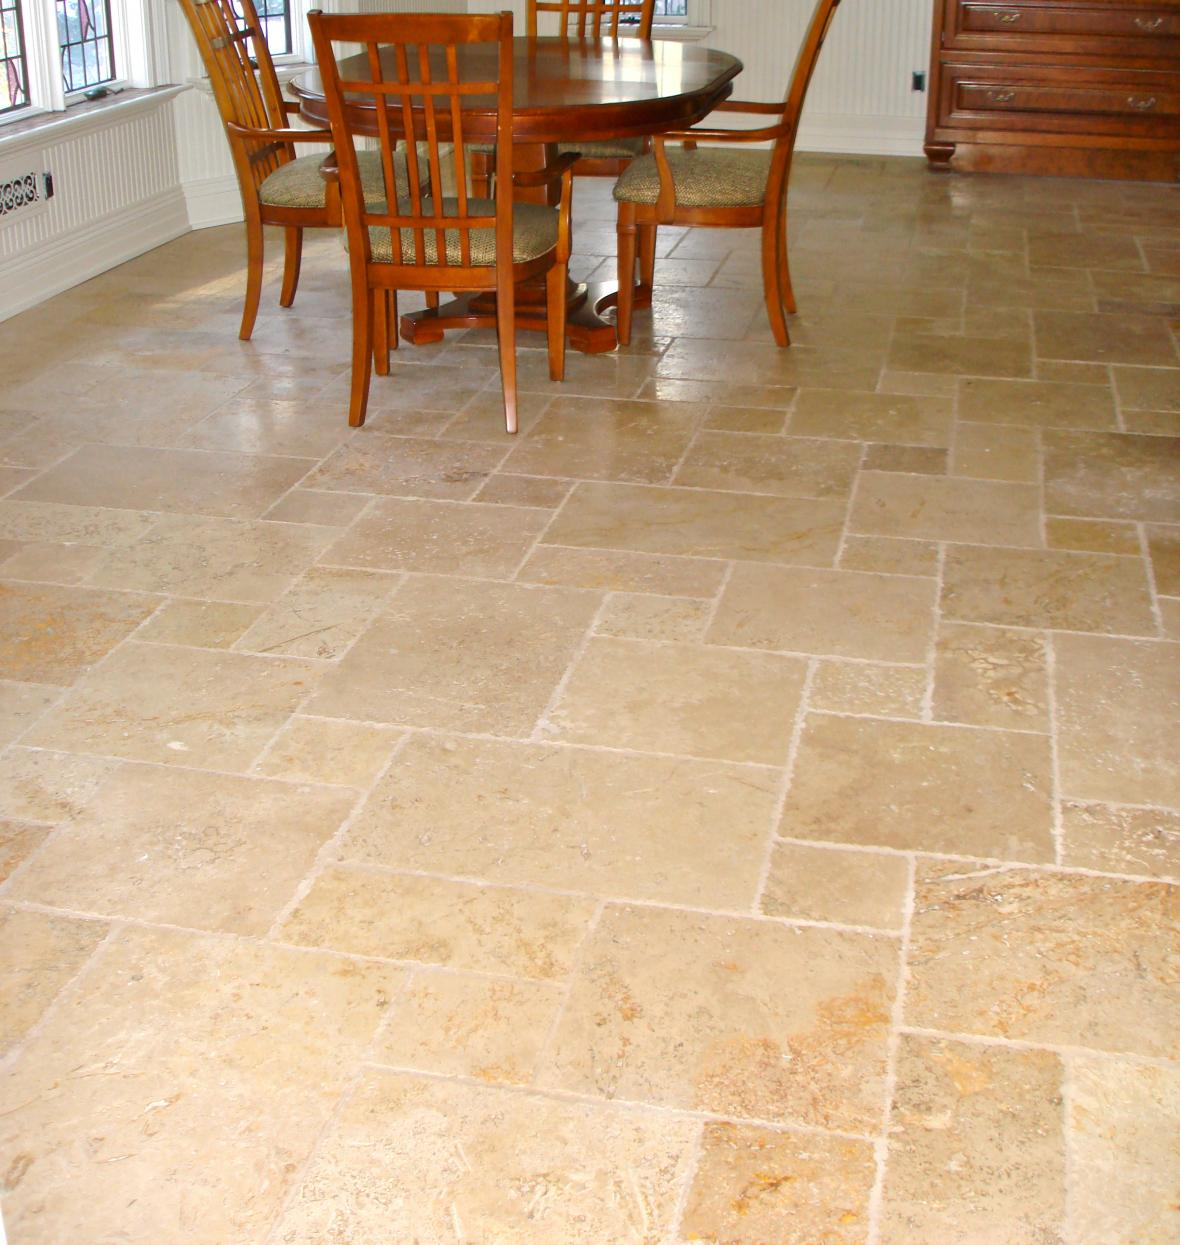 Tumble Marble Kitchen Floor New Jersey Custom Tile With Dining Room Flooring Options